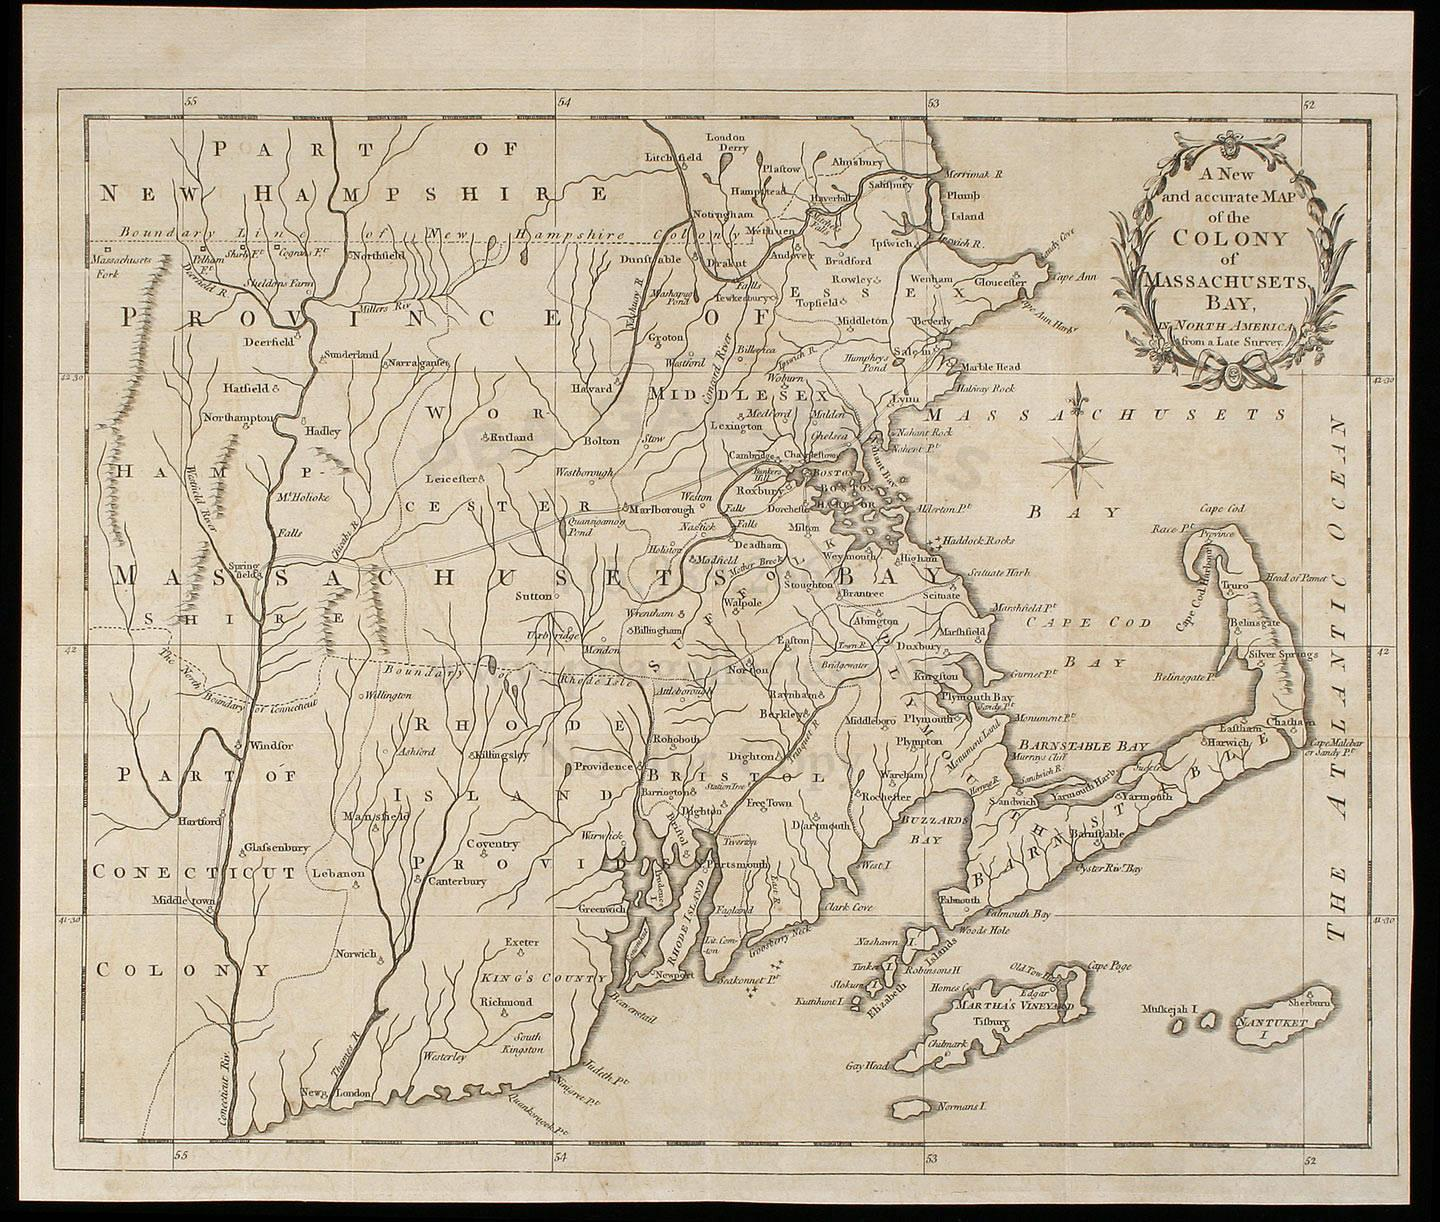 A New and Accurate Map of the Colony of Massachusetts Bay in North